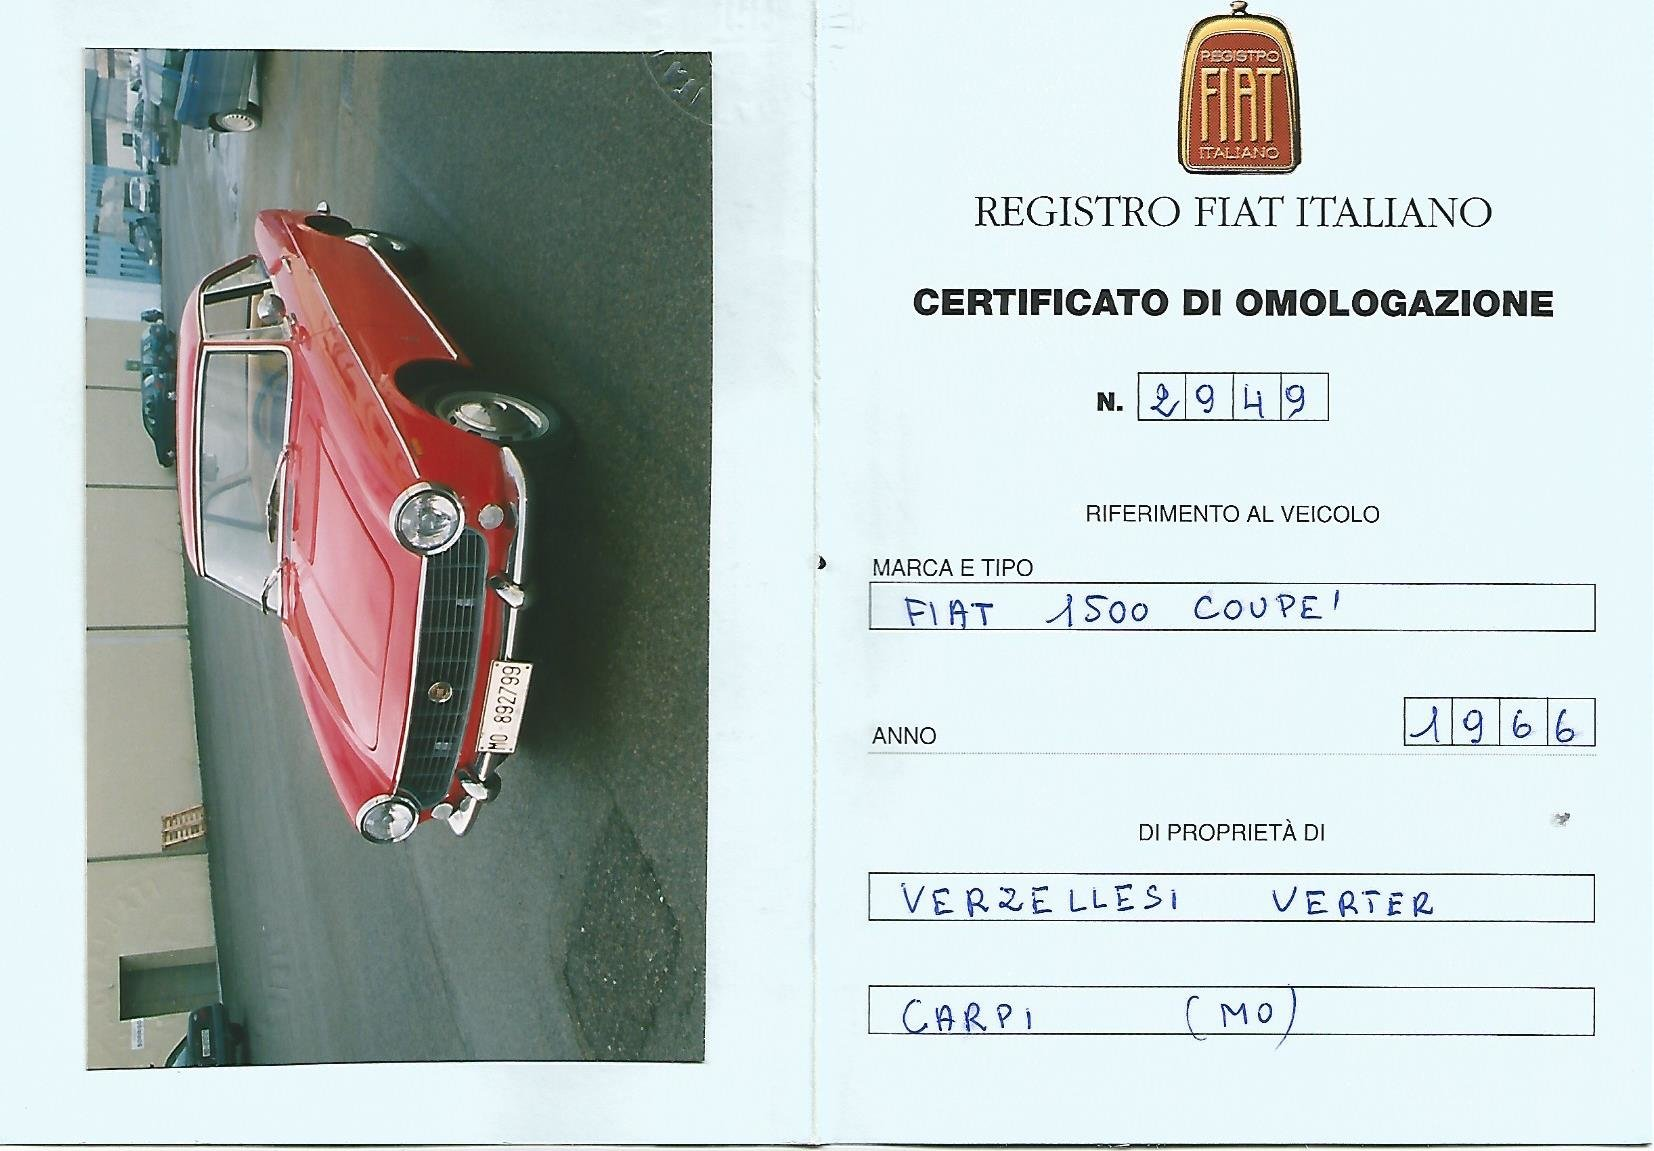 1966 FIAT 1500 COUPE' PININFARINA -3 OWNERS ONLY For Sale (picture 6 of 6)